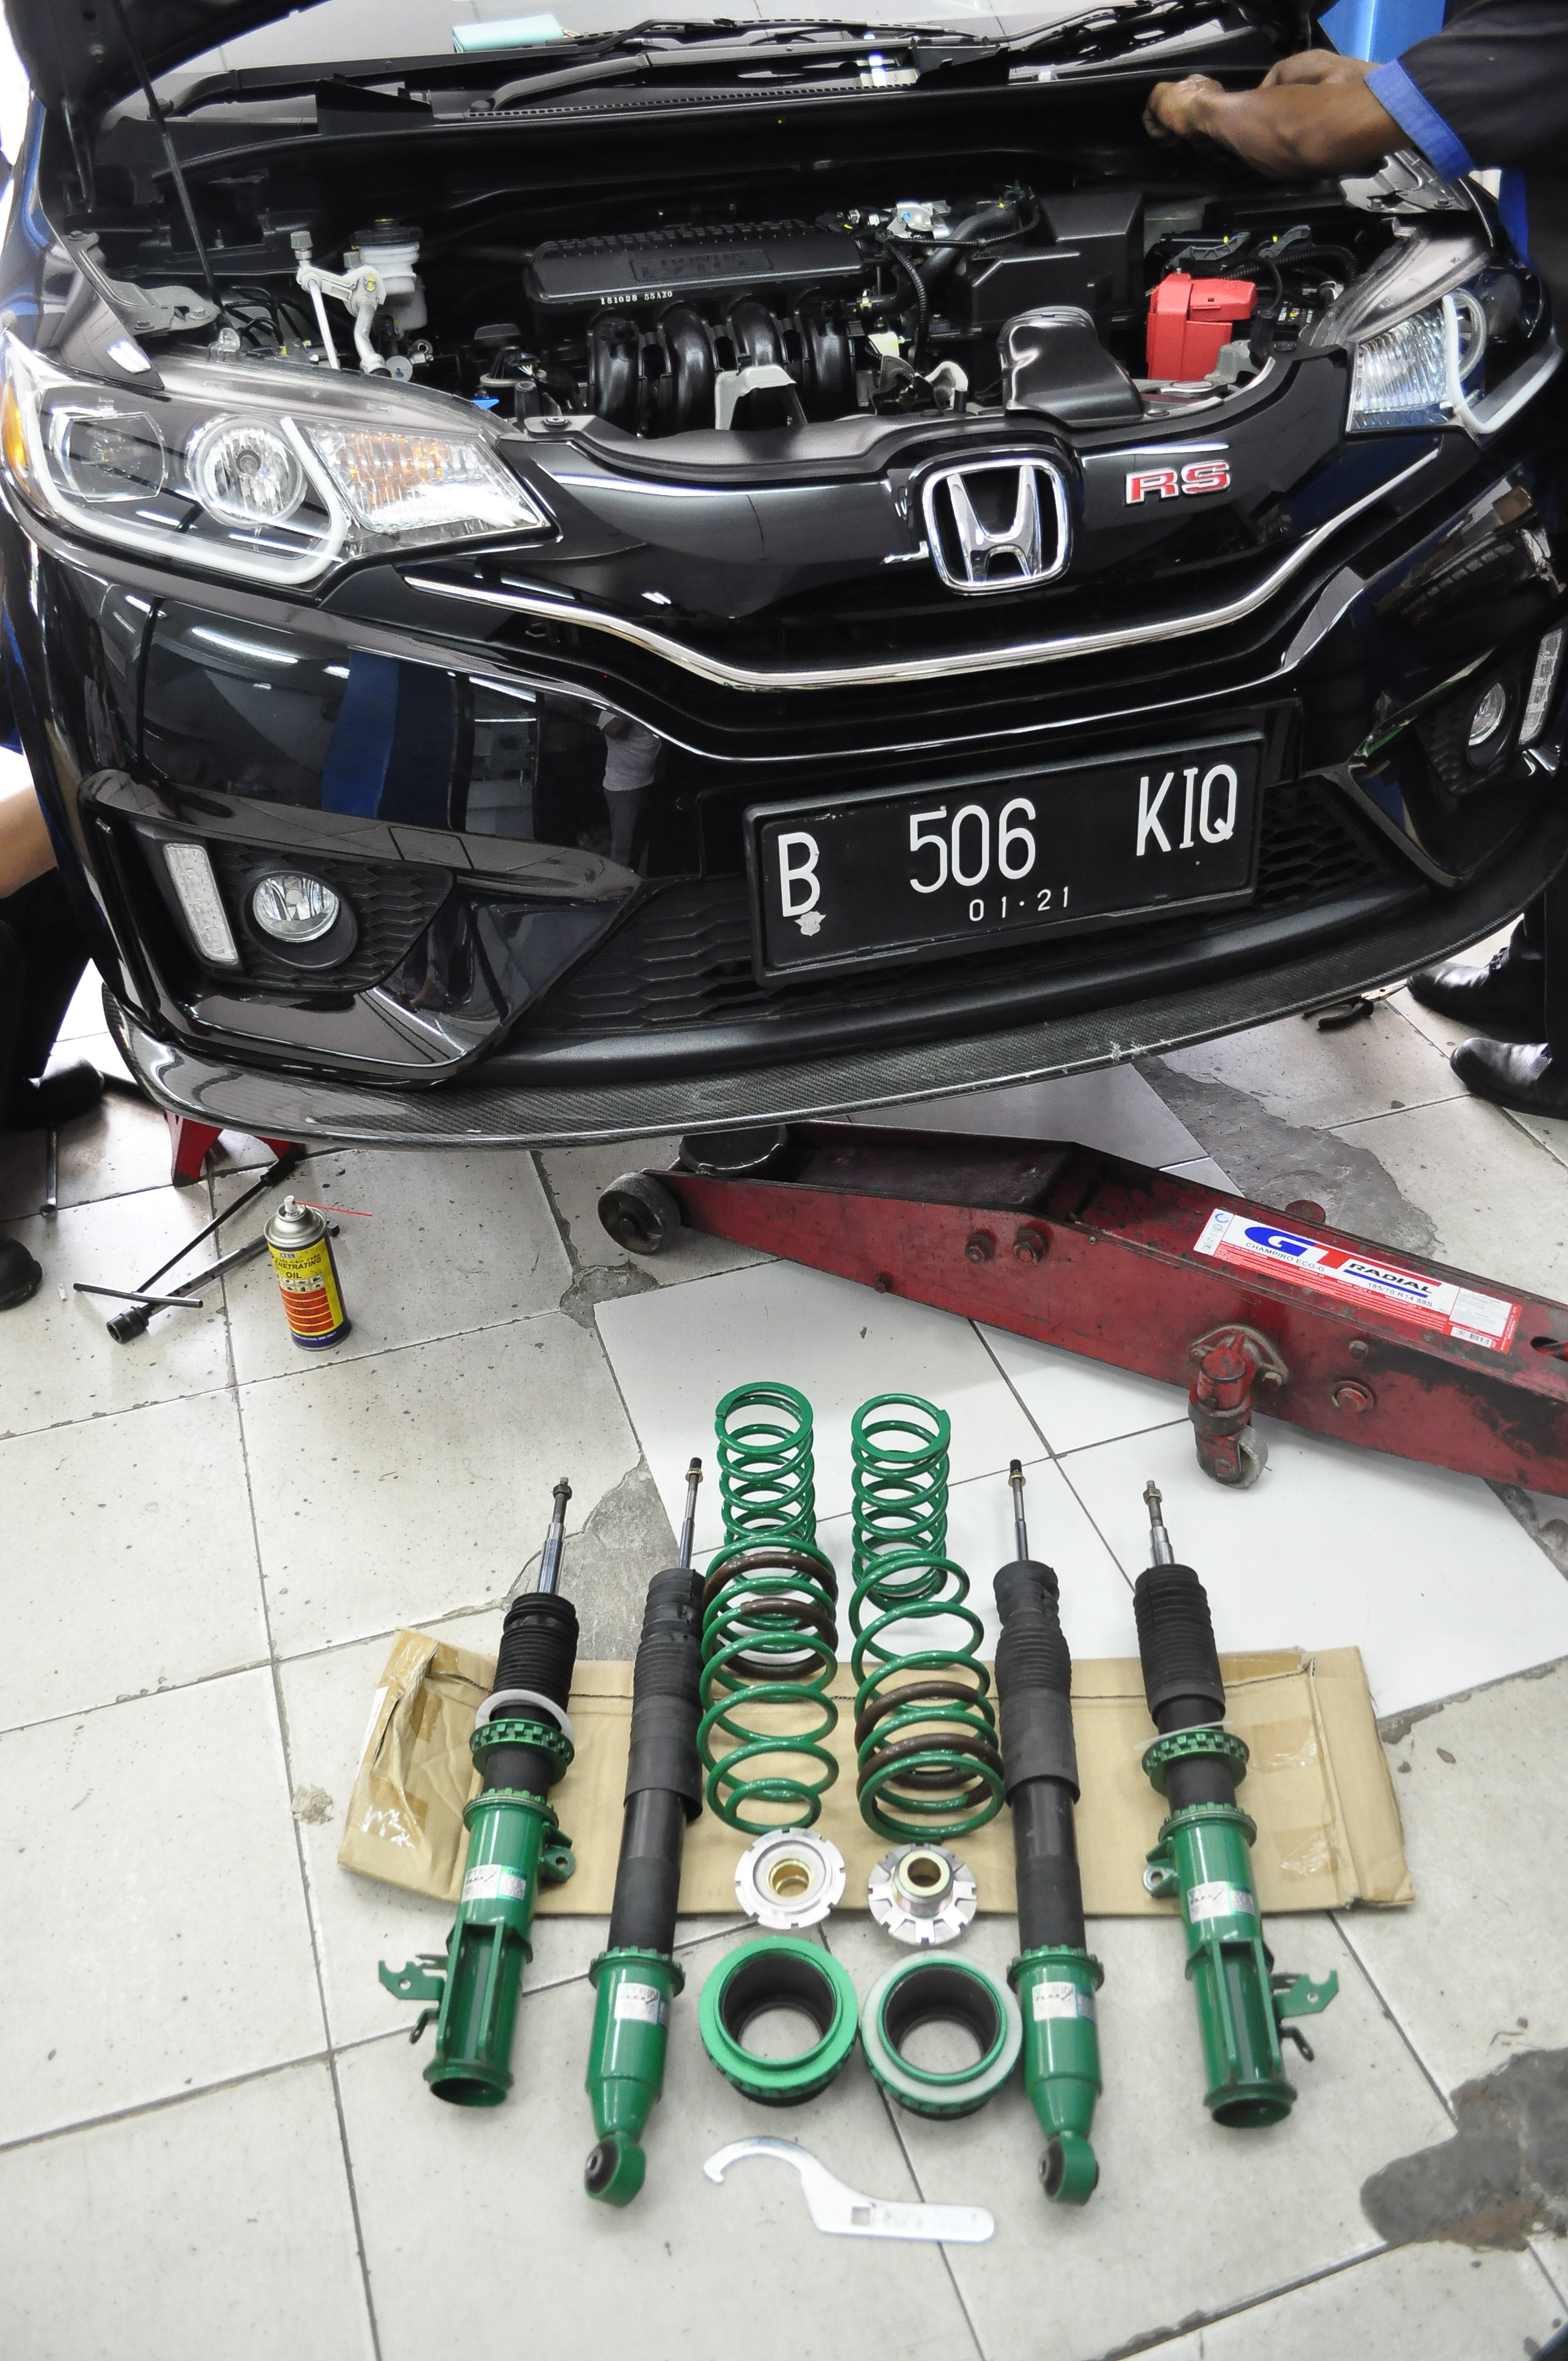 Asco Motor Website Under Construction Honda Jazz Rs Civic All Gk5 Parts Modification In Here